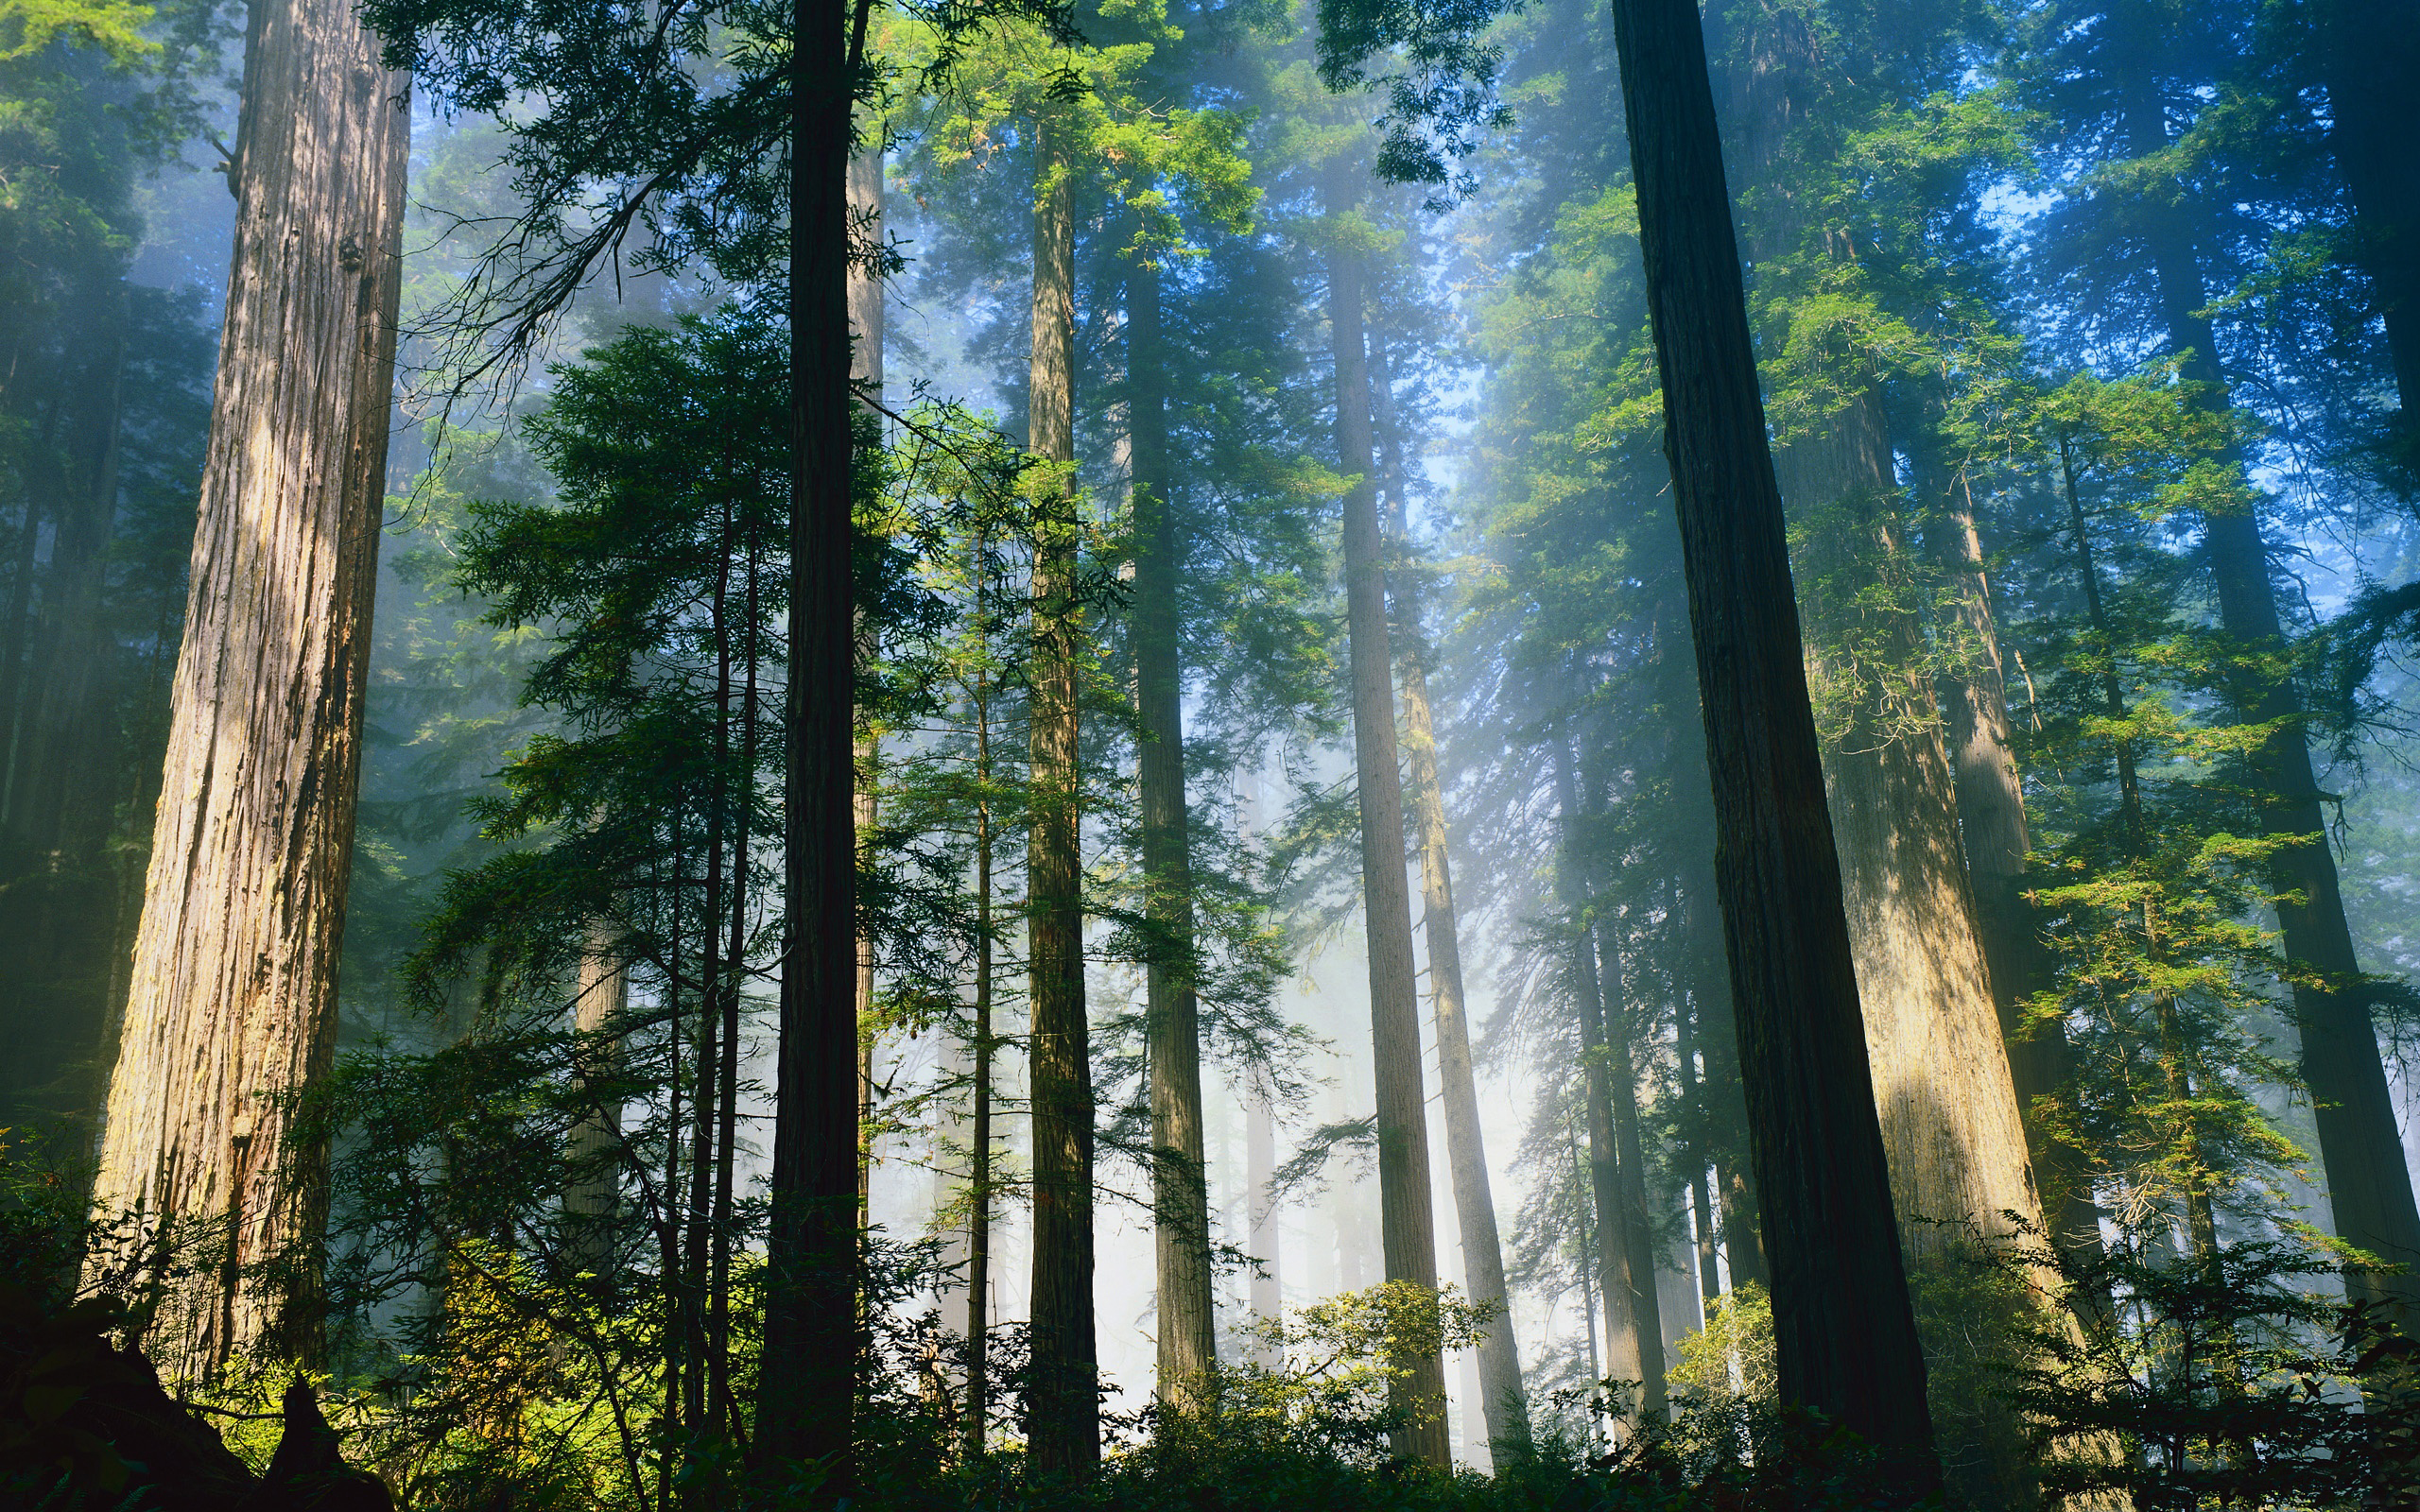 Estudiosingleses a2 redwood national park scenes set on the forest moon endor in star wars episode vi return of the jedi were filmed in the tall trees redwood sciox Choice Image